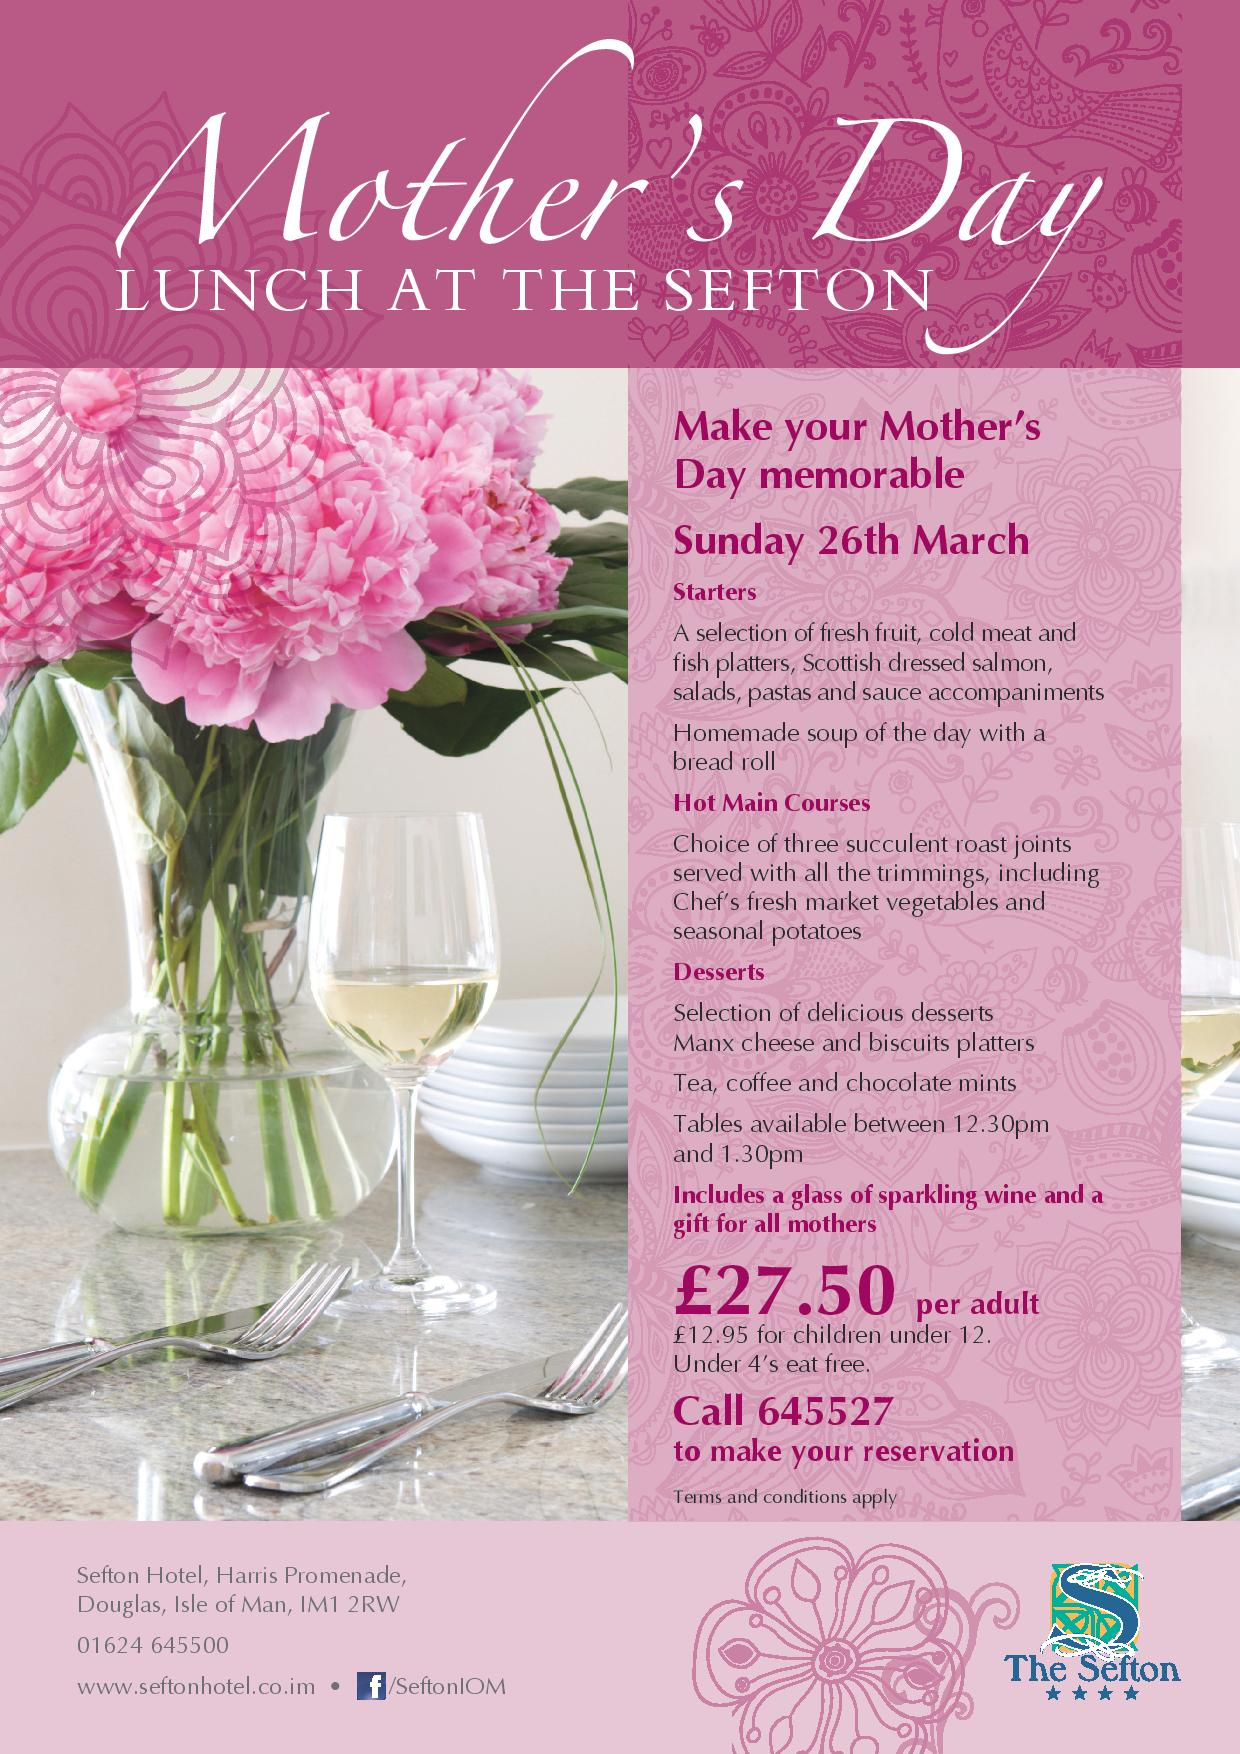 Mother's Day at The Sefton